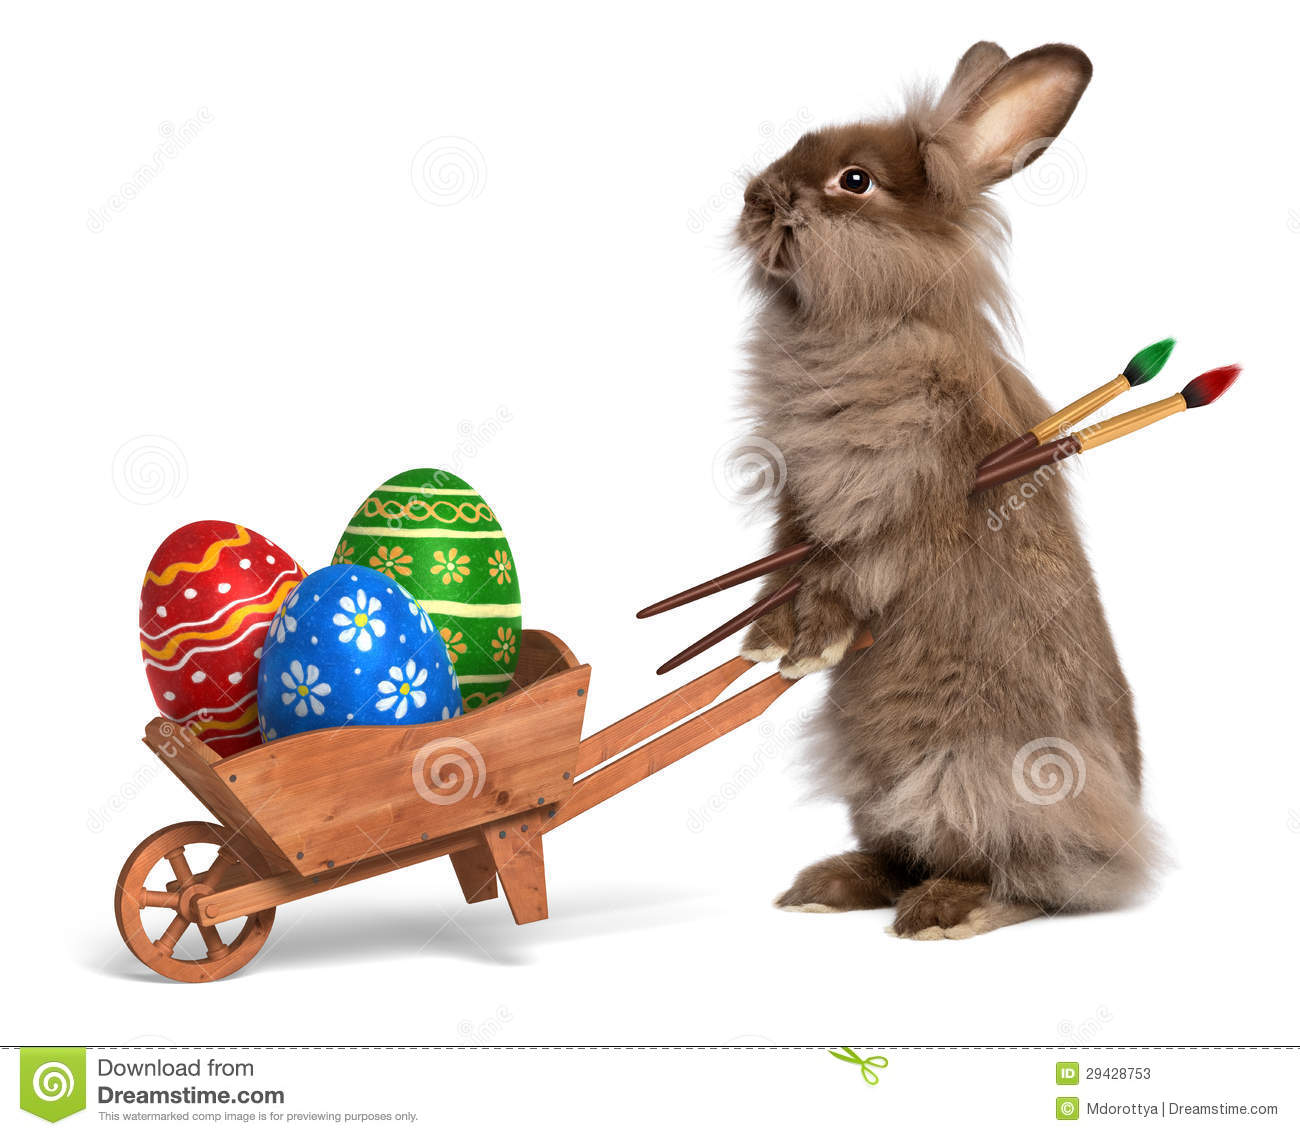 Funny Easter bunny rabbit with a wheelbarrow and some Easter egg